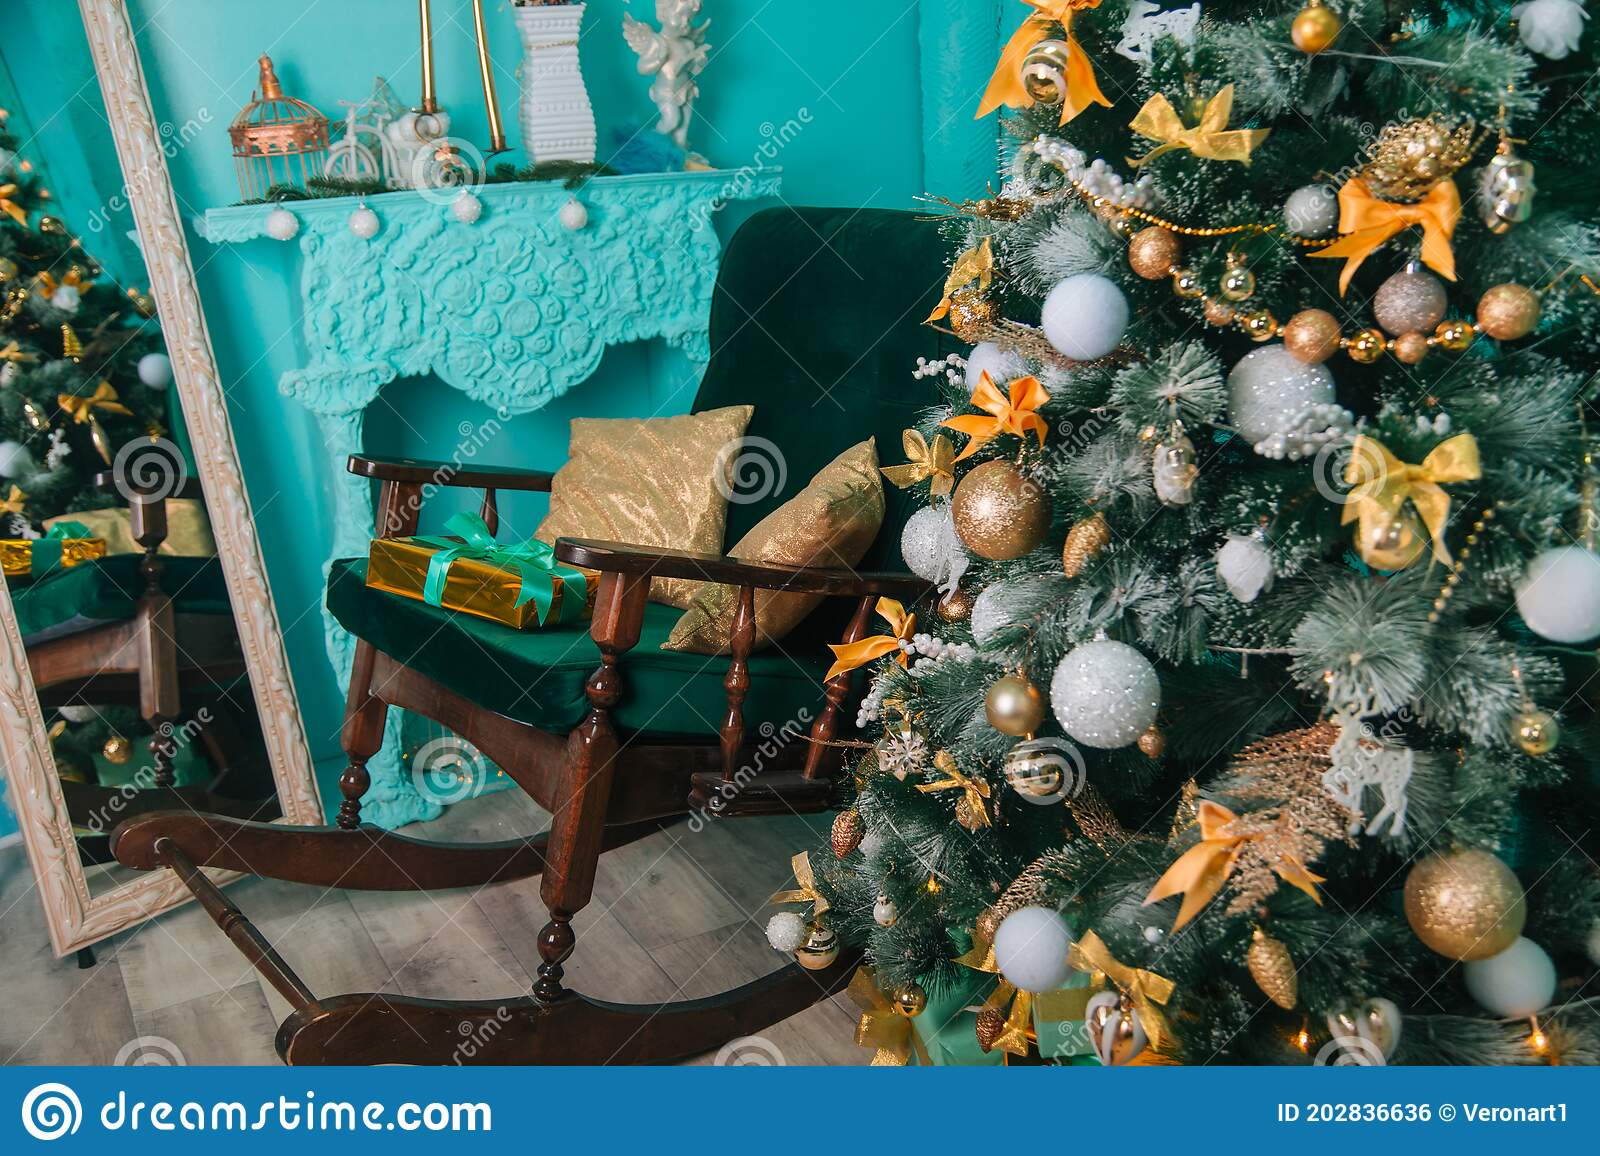 Christmas Tree With Gold And White Balls In A Turquoise Interior Christmas With Gifts Festive Decoration New Years Stock Photo Image Of Pine Door 202836636